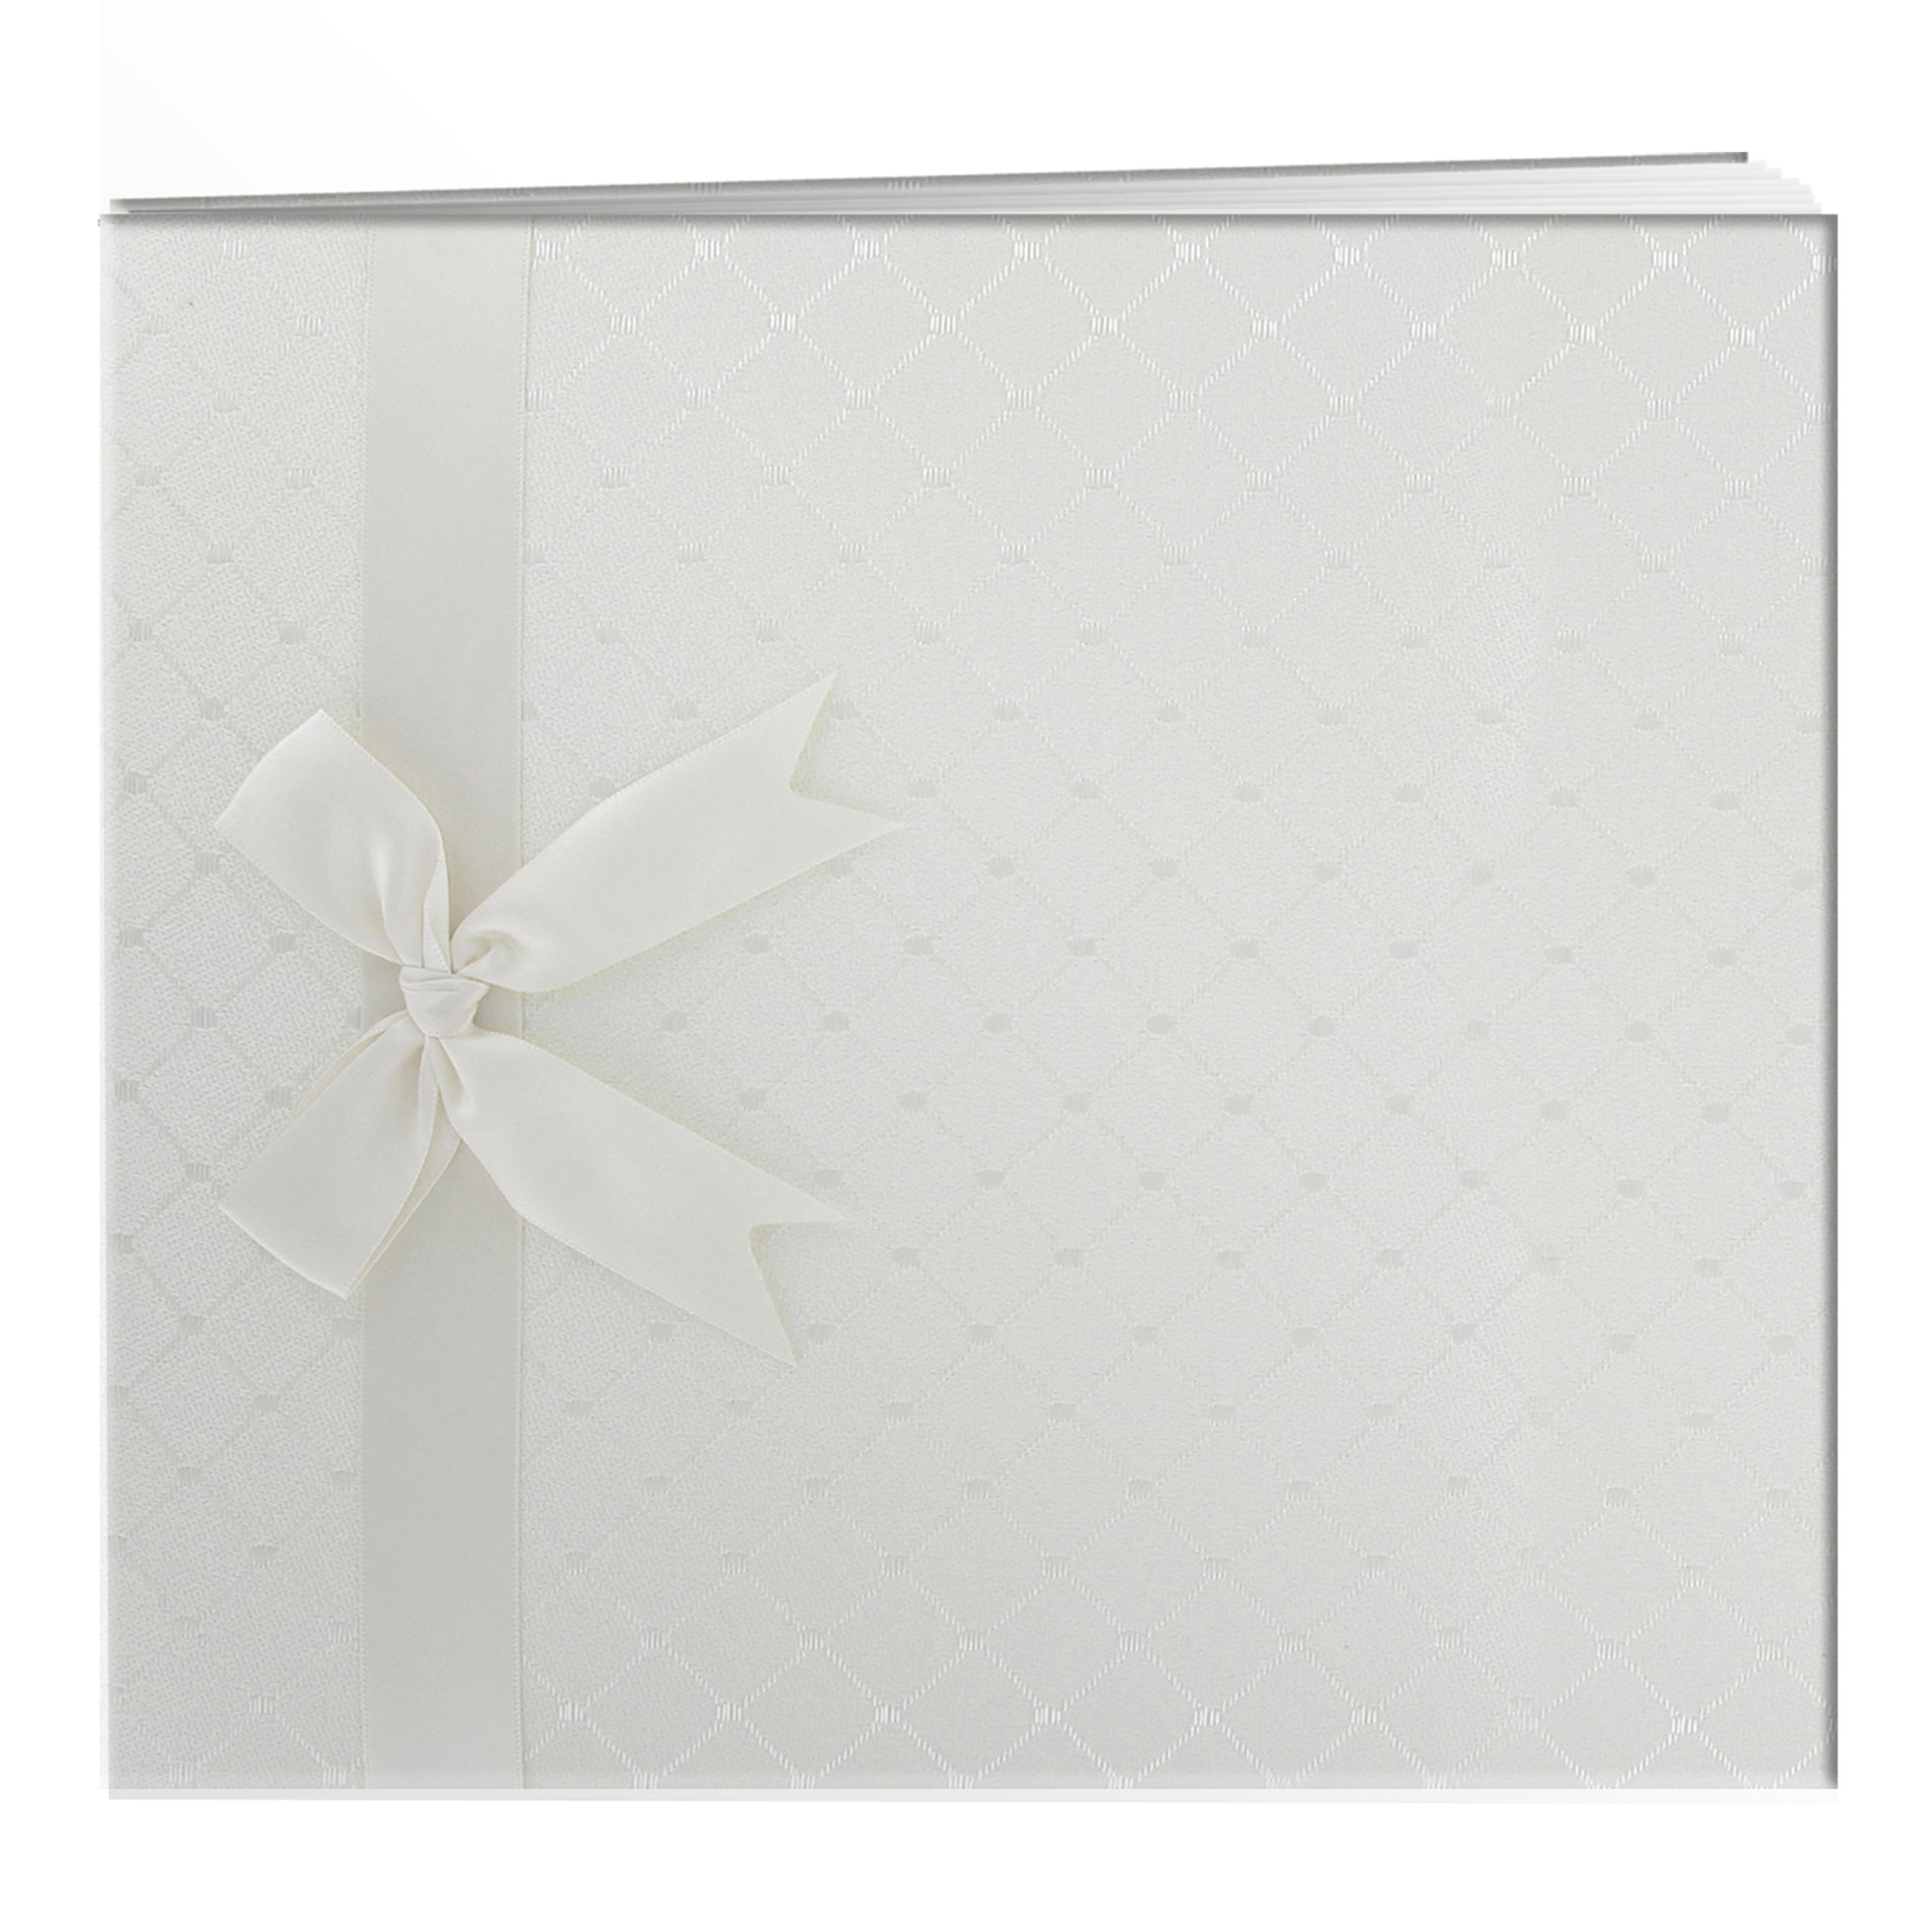 Pioneer RMW-88 White Refill Pages for 8 Inch by 8 Inch Memory Books